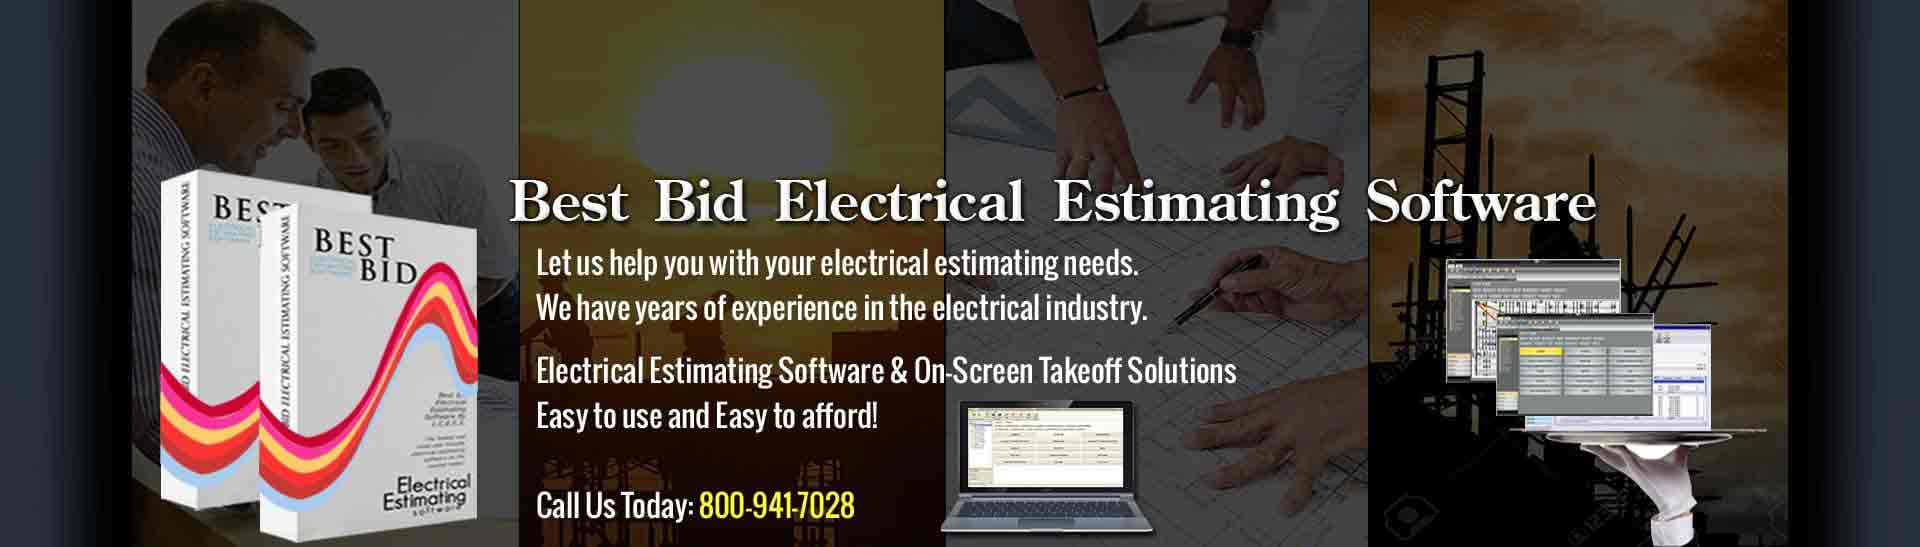 electrical-estimating-software